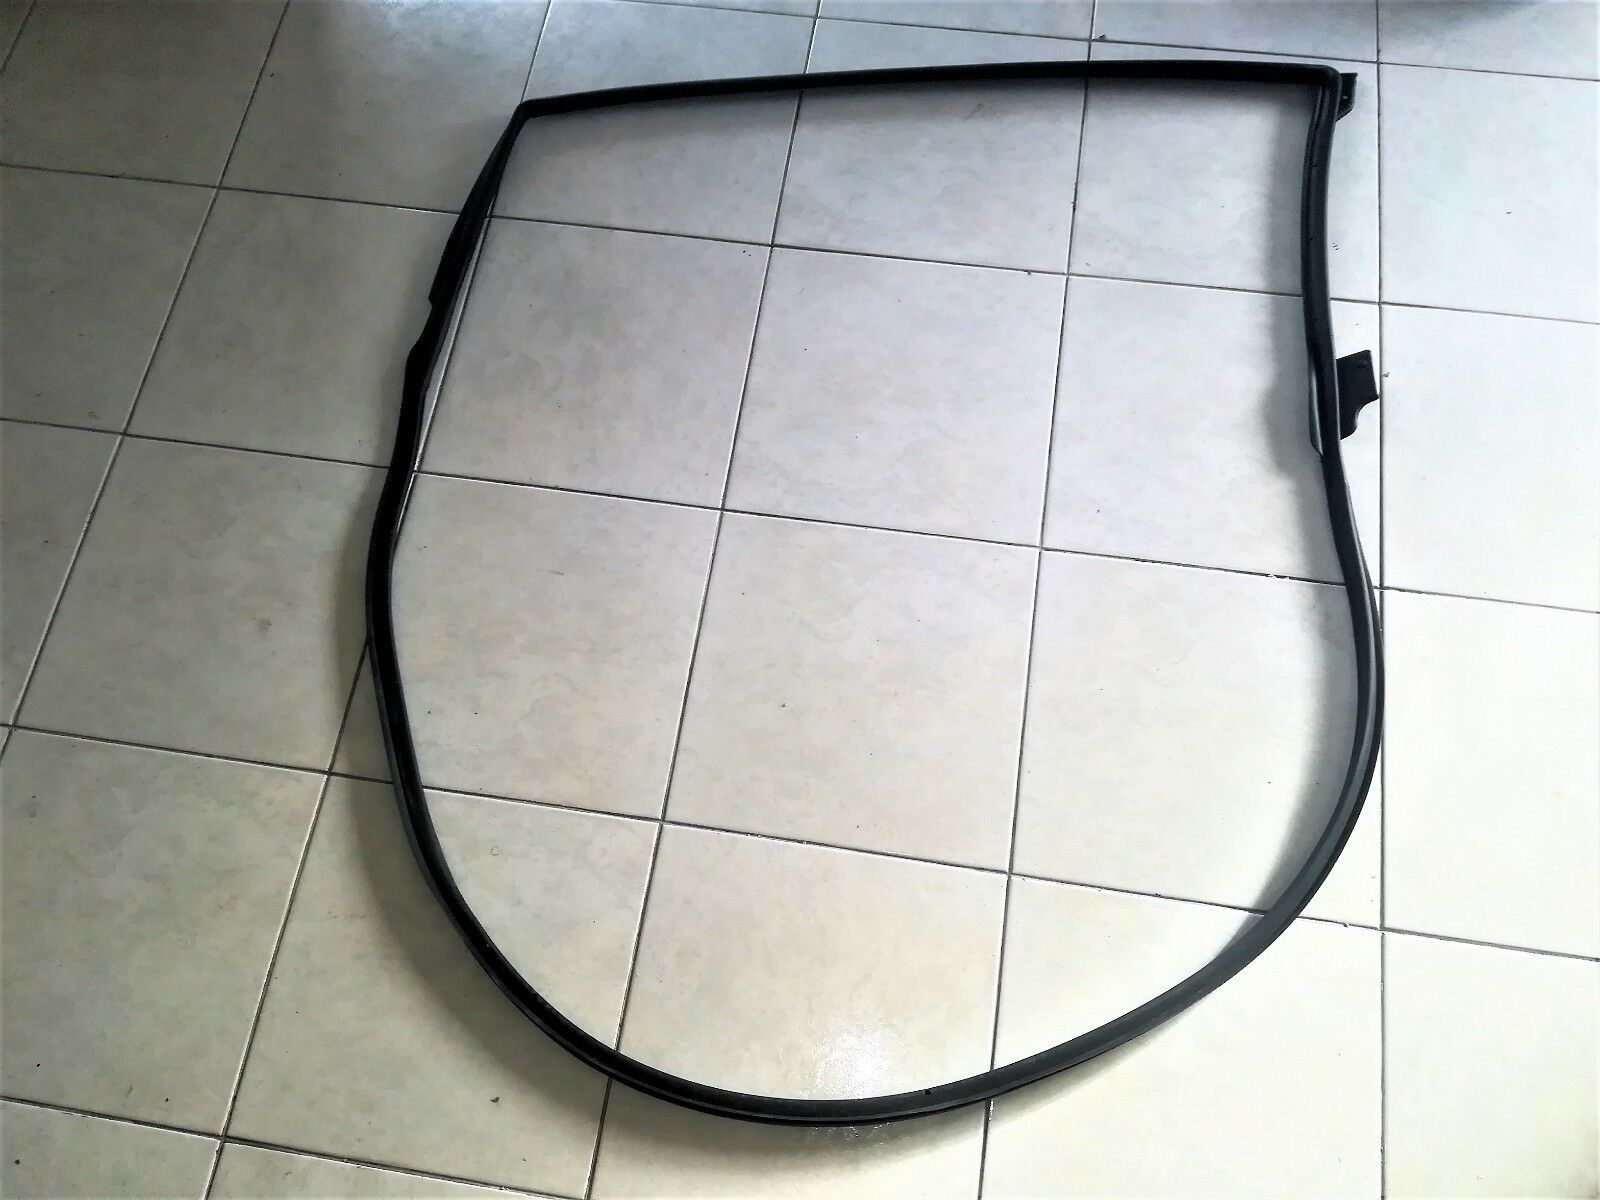 2011 - 2017 Leaf Front Door Weatherstrip Seal Right 80830-3NA0A